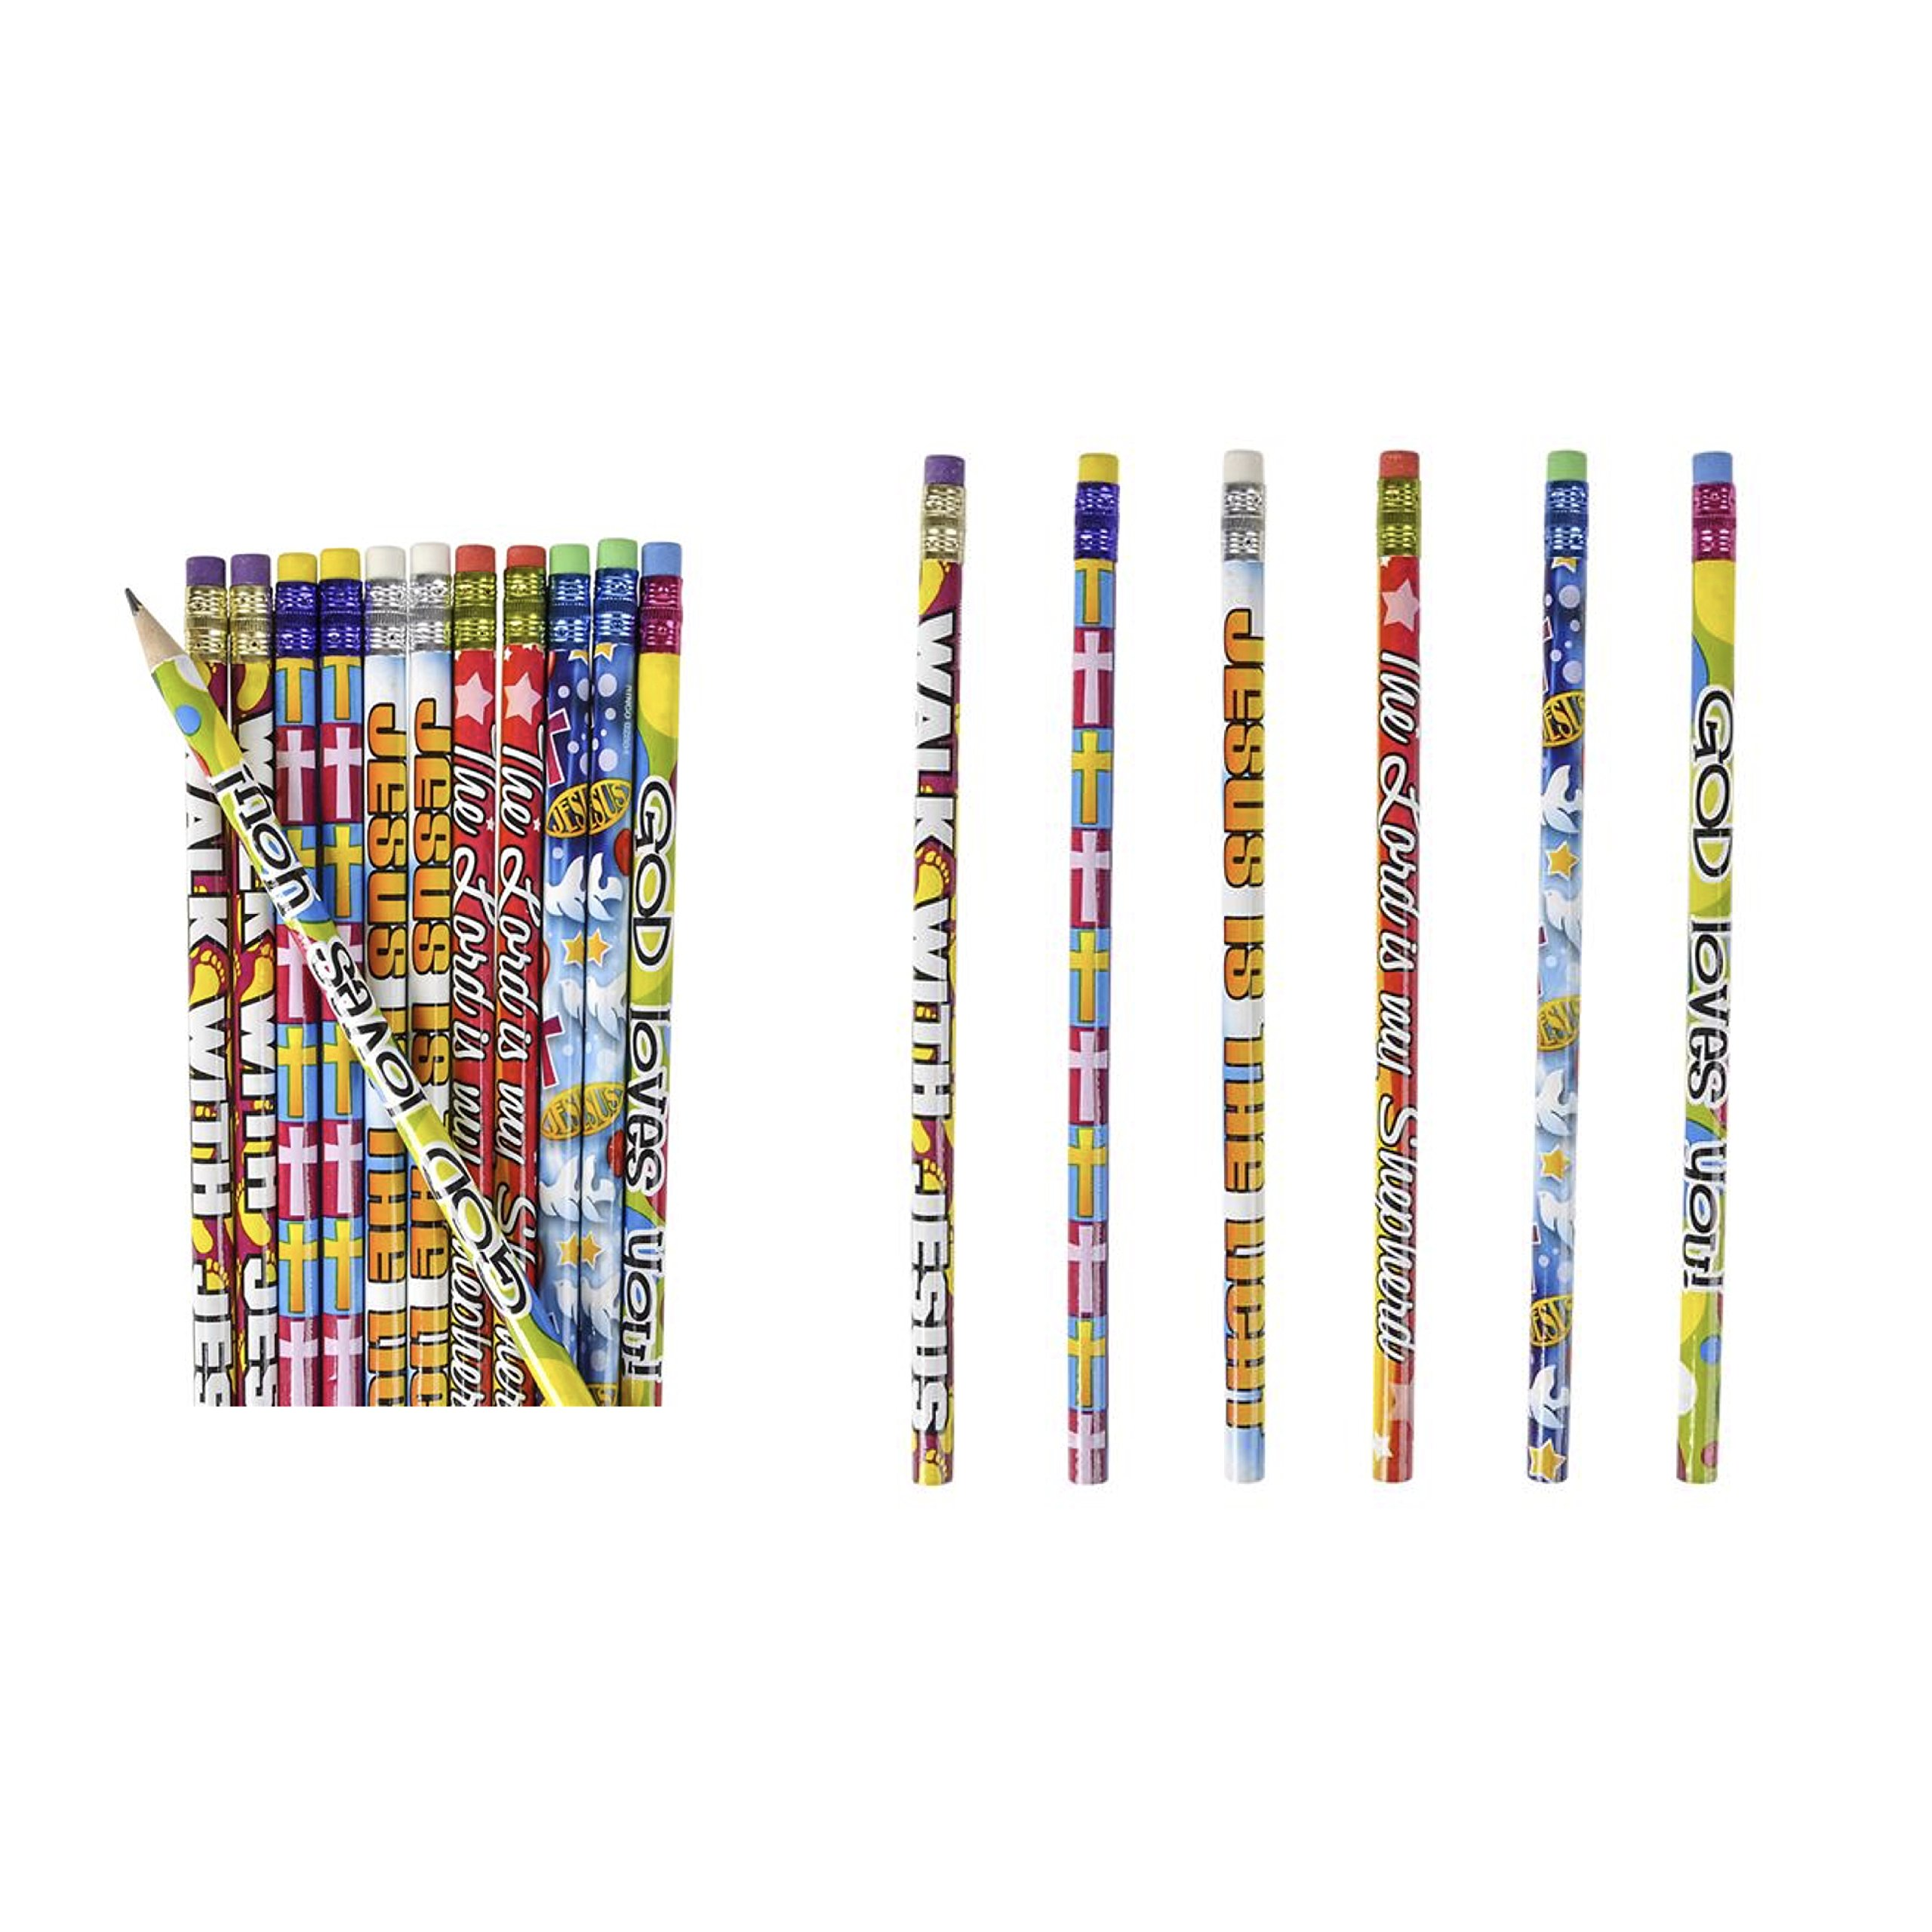 4 Dozen (48) Religious Pencils - Pencils #2 Lead - Classroom Rewards Teacher VBS Education Jesus GOD Loves Me by JUST 4 FUN